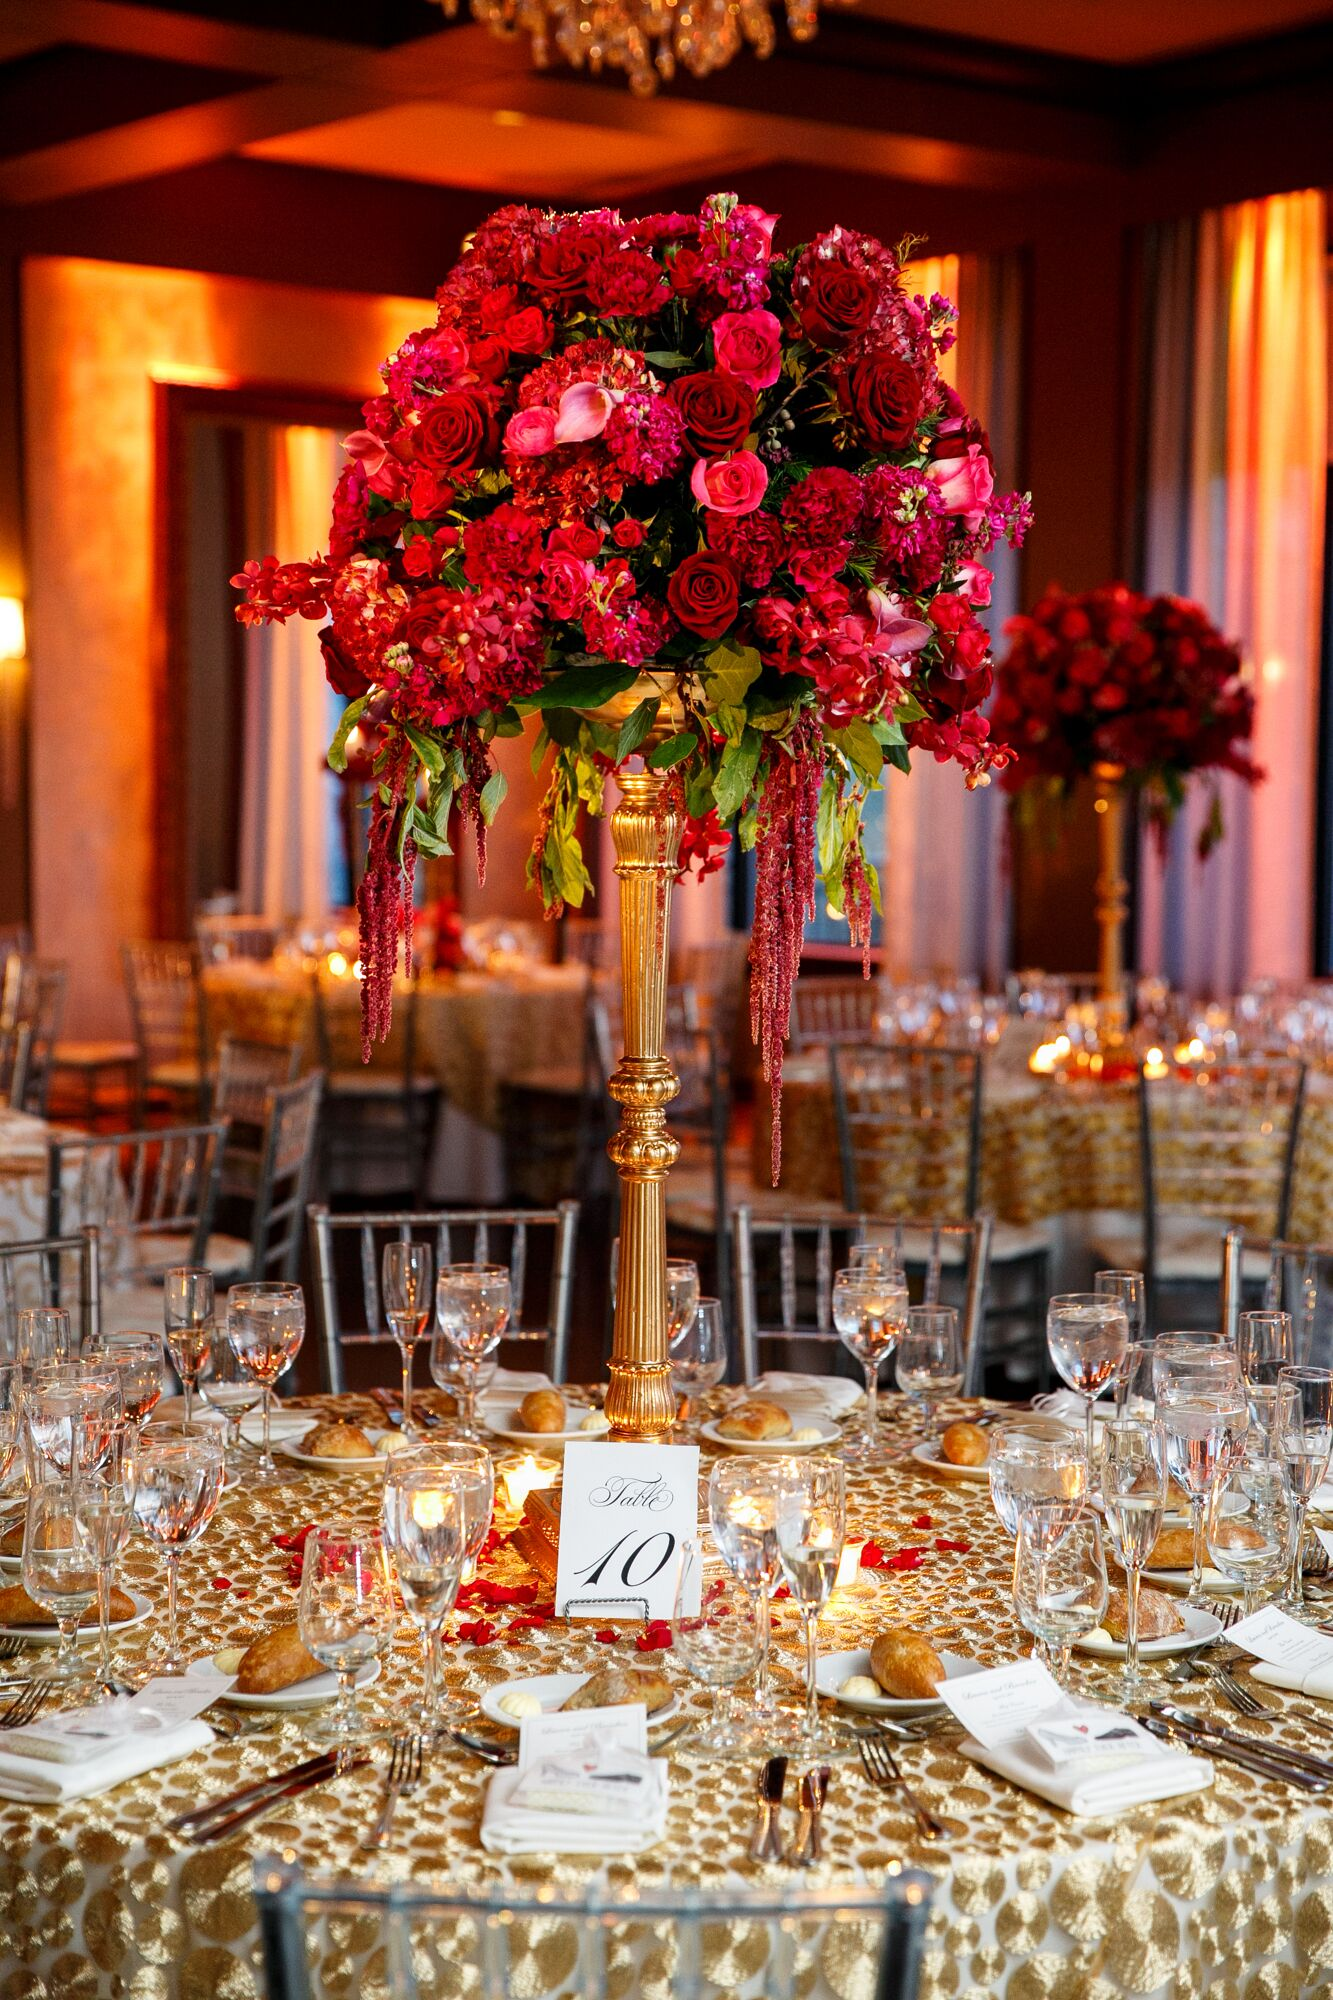 Elaborate red rose centerpiece on gold stand for Table jardin beauty